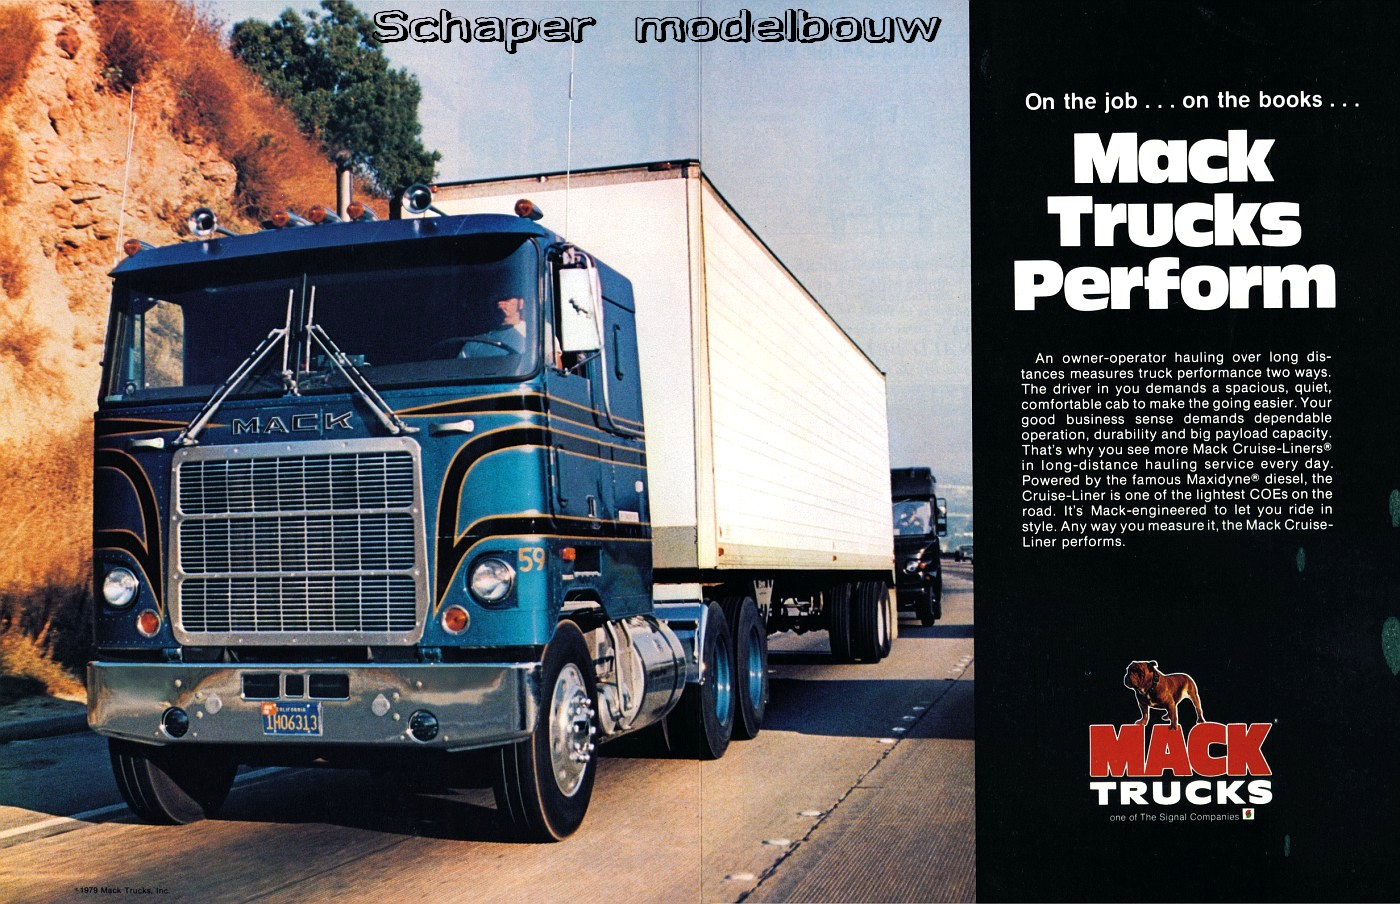 Mack Cruiseliner Schaper Modelbouw in addition  in addition  moreover  together with A. on 87 chevy truck